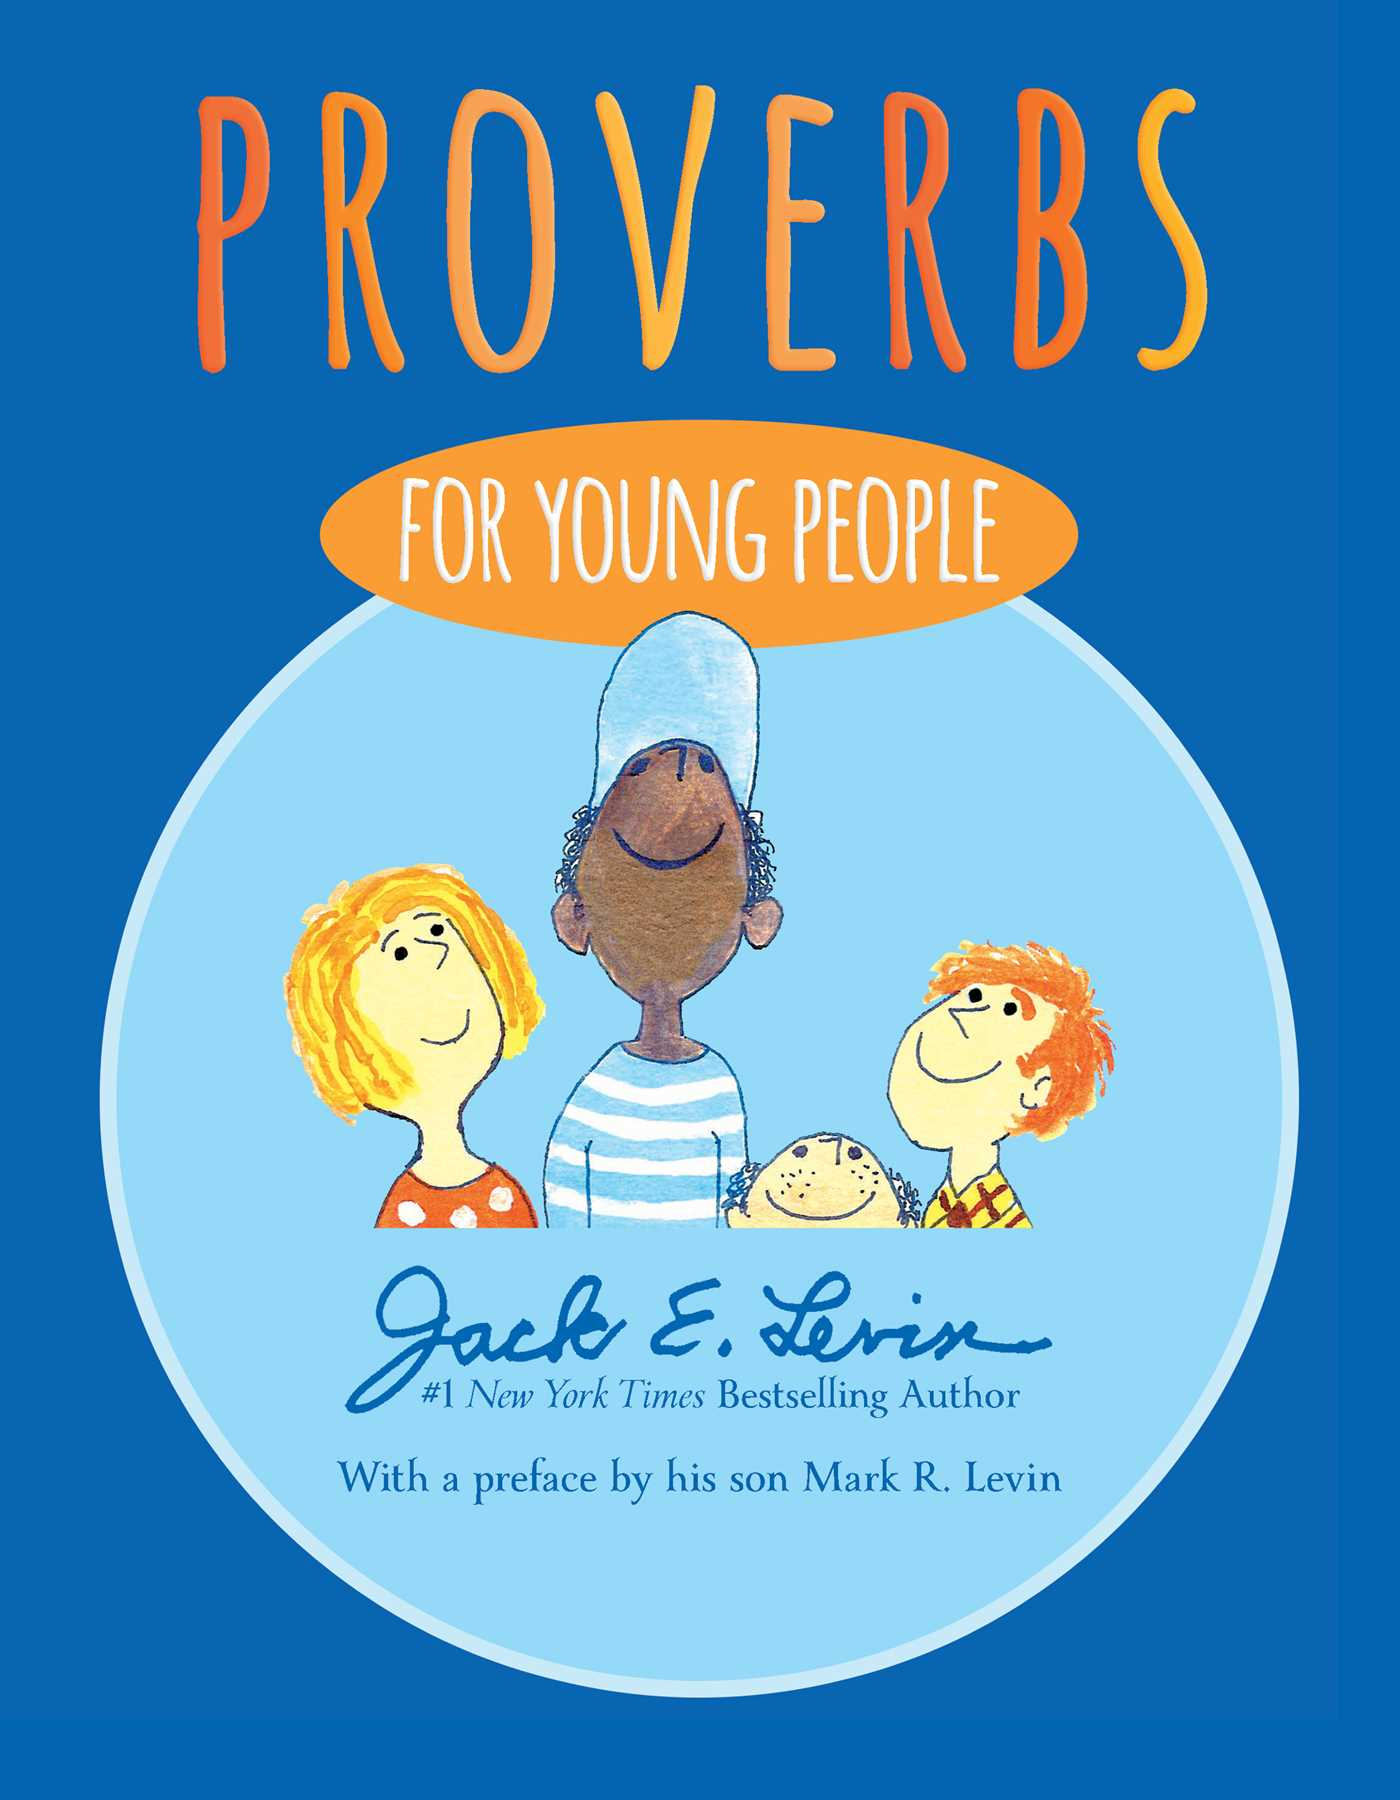 Proverbs for young people 9781481459457 hr